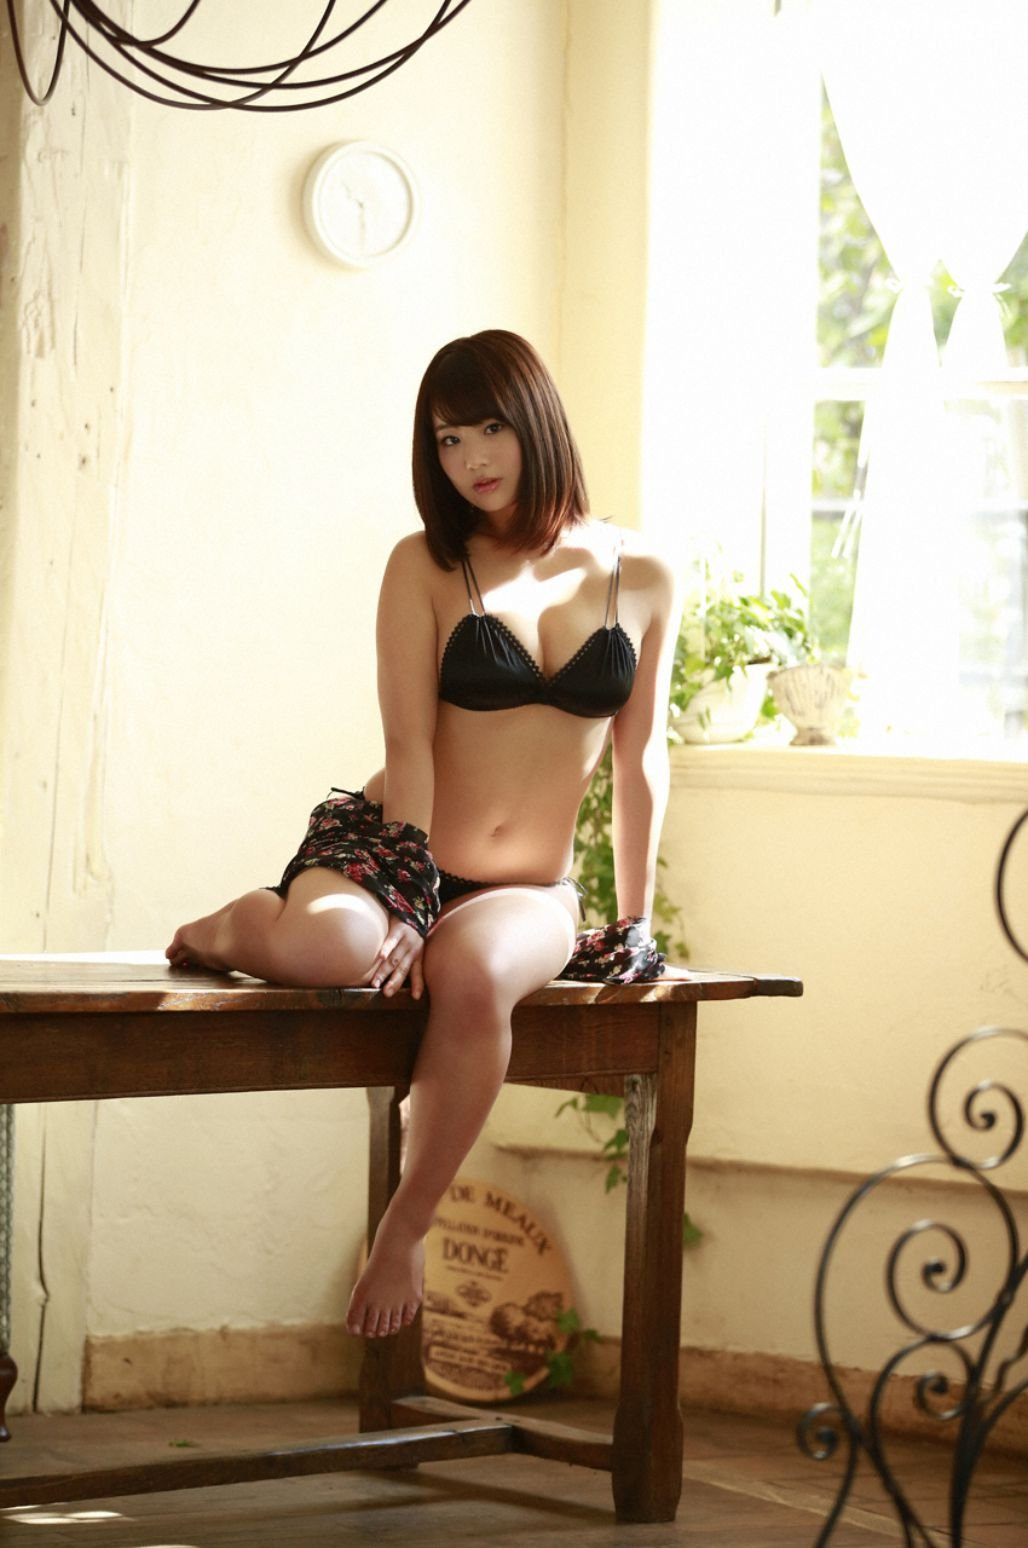 Image-Japanese-Actress-And-Model-Natsumi-Hirajima-Sexy-Lingerie-Queen-TruePic.net- Picture-2